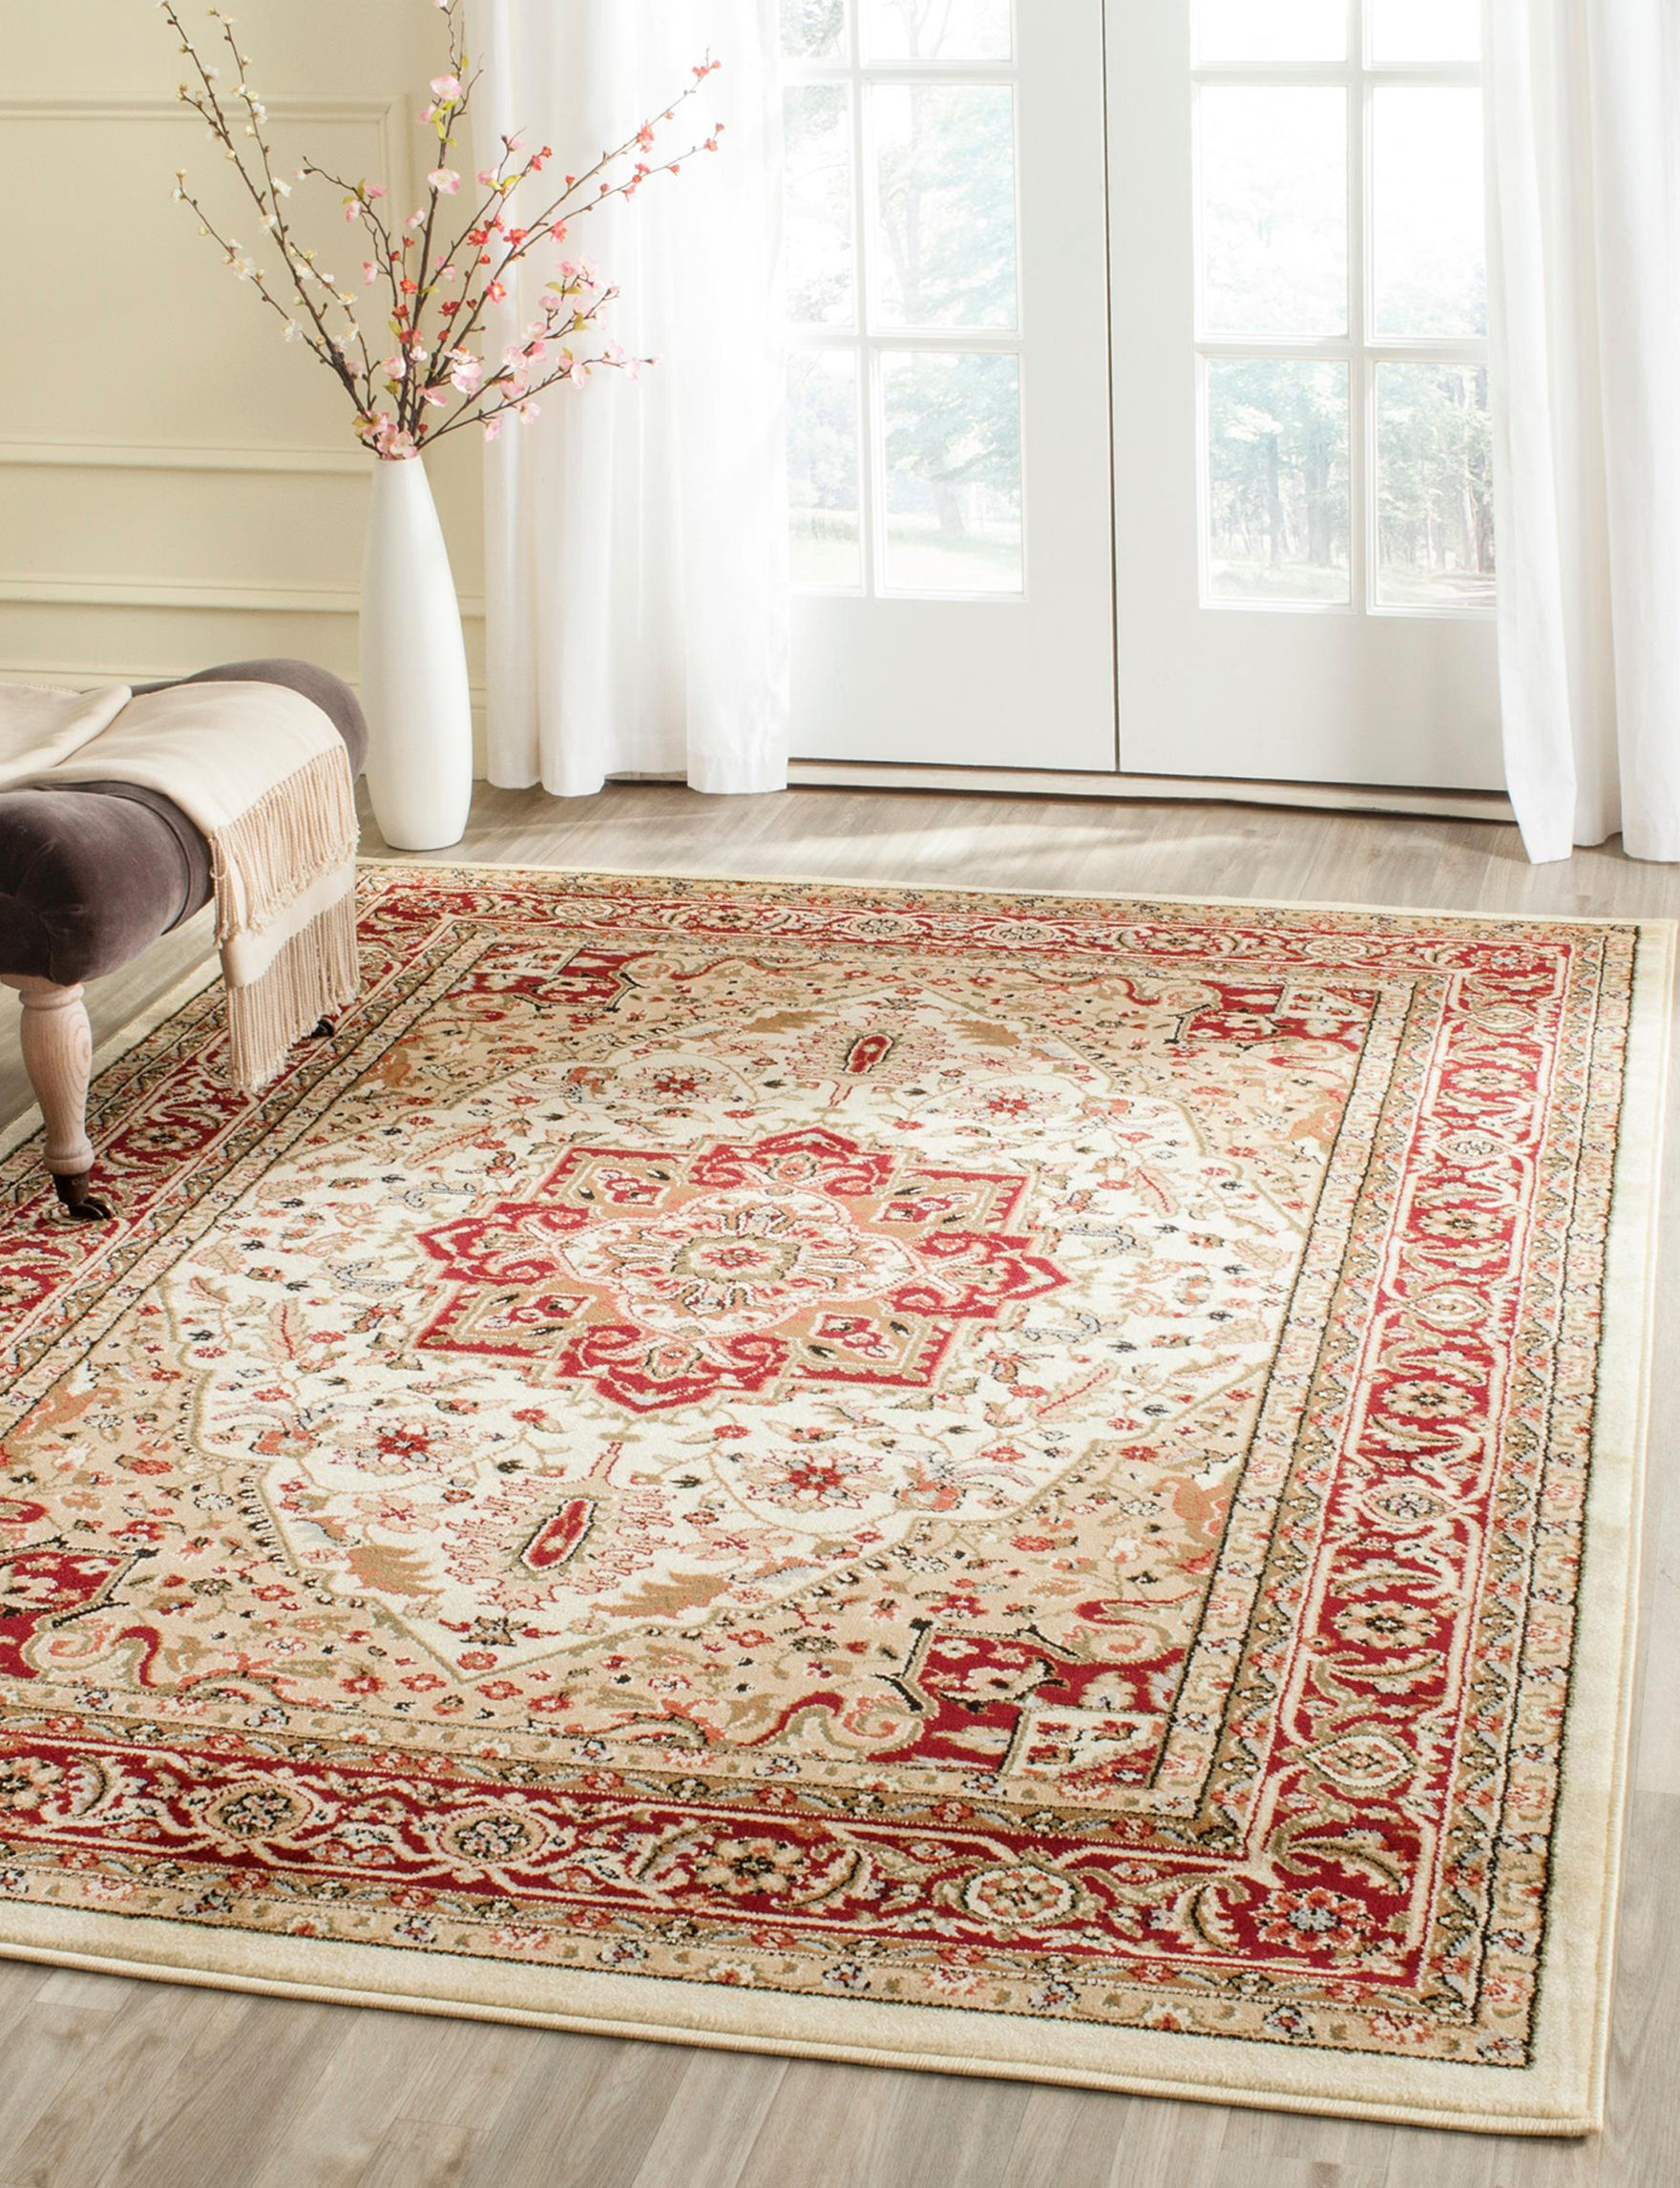 Safavieh Red Accent Rugs Area Rugs Runners Rugs